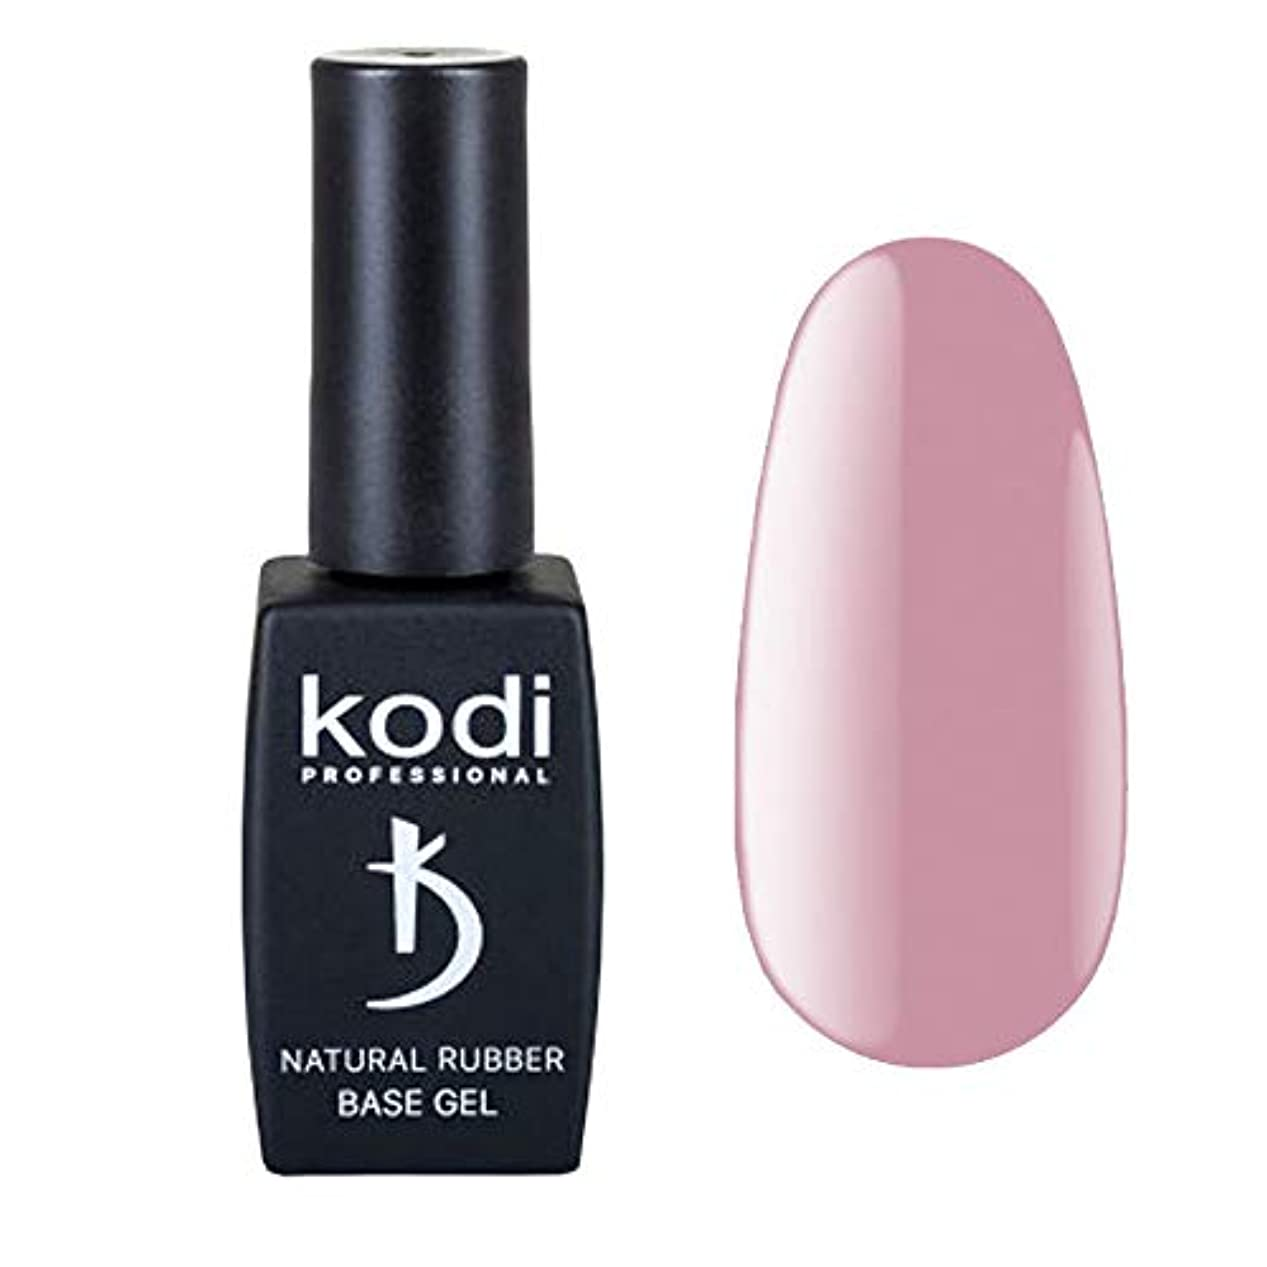 溢れんばかりの病気だと思うシーケンスKodi Professional New Collection CN Cappuccino #70 Color Gel Nail Polish 12ml 0.42 Fl Oz LED UV Genuine Soak Off